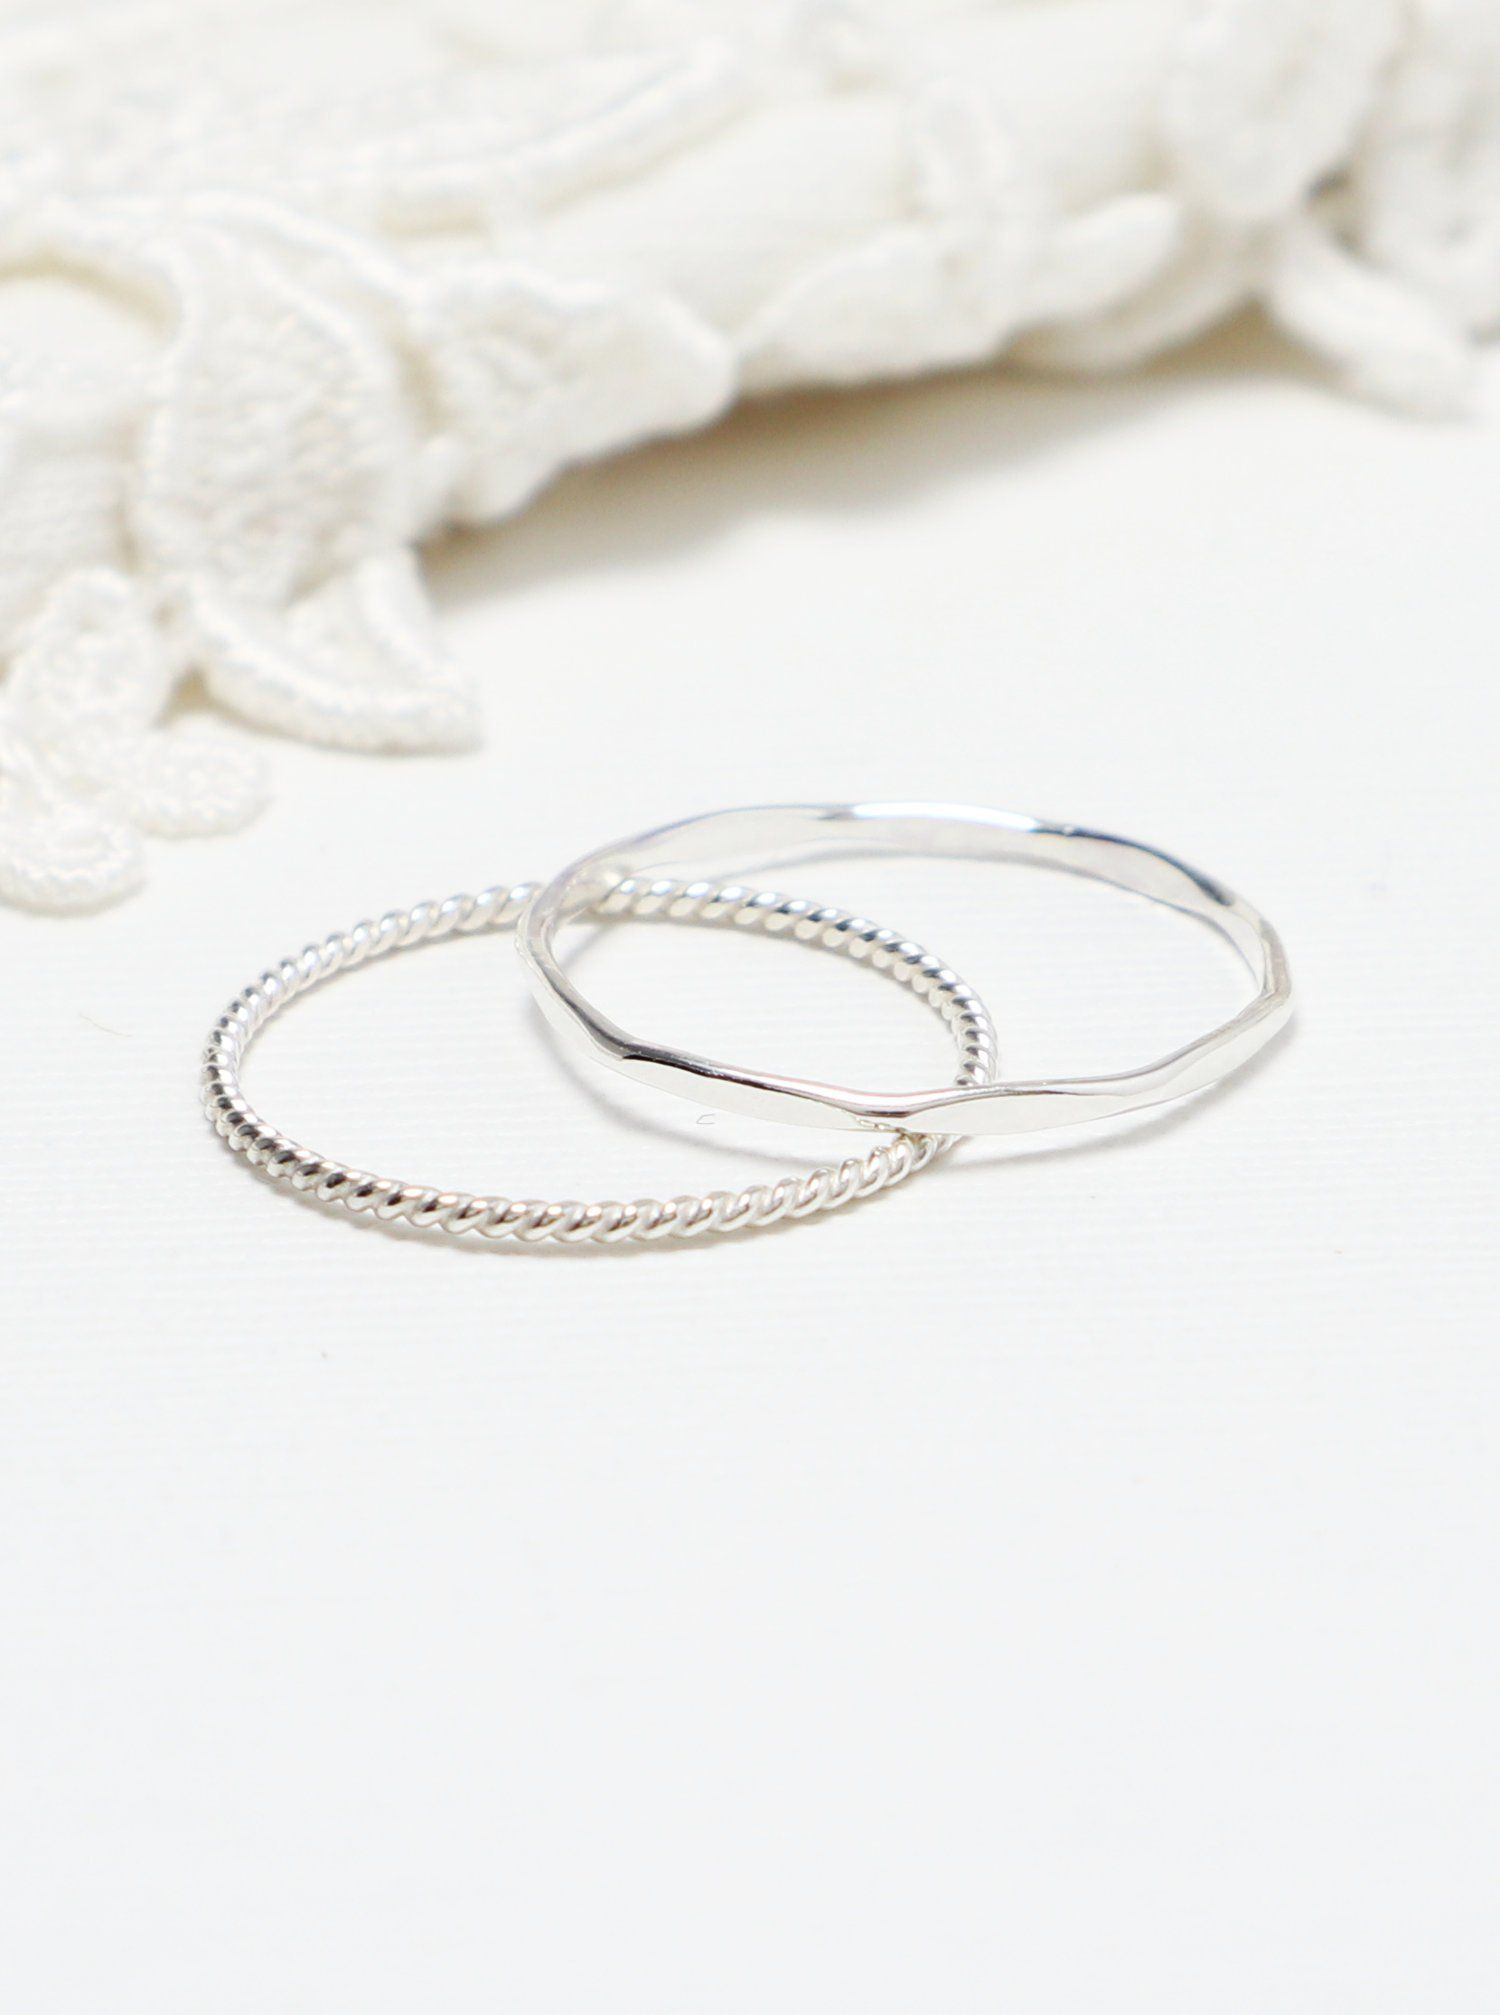 Twist Ring Rope Ring Silver Rings for Women* Stacking Ring* Sterling Silver Ring* Gift for Her* Delicate Ring* Dainty Ring* Simple Ring*